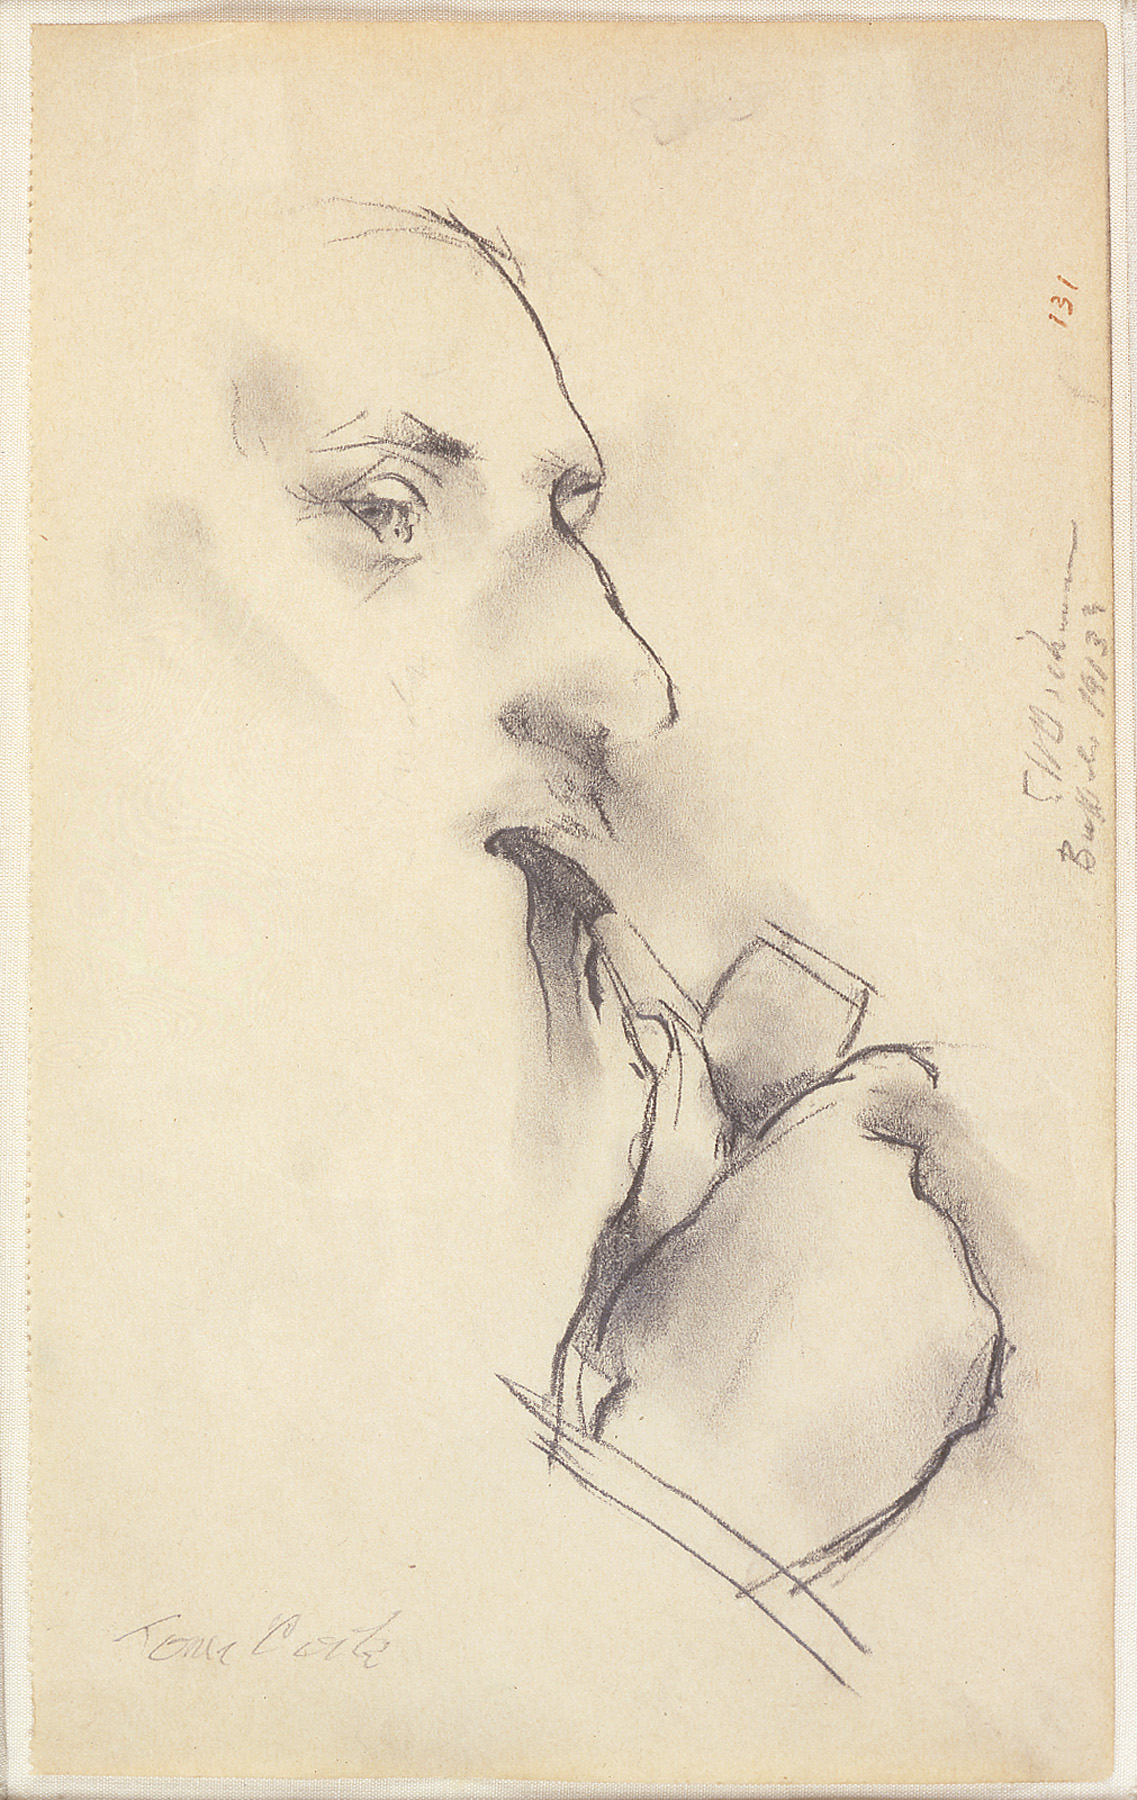 Dickinson-Portrait-of-Tom-Clark-with-Pipe-FO-11120